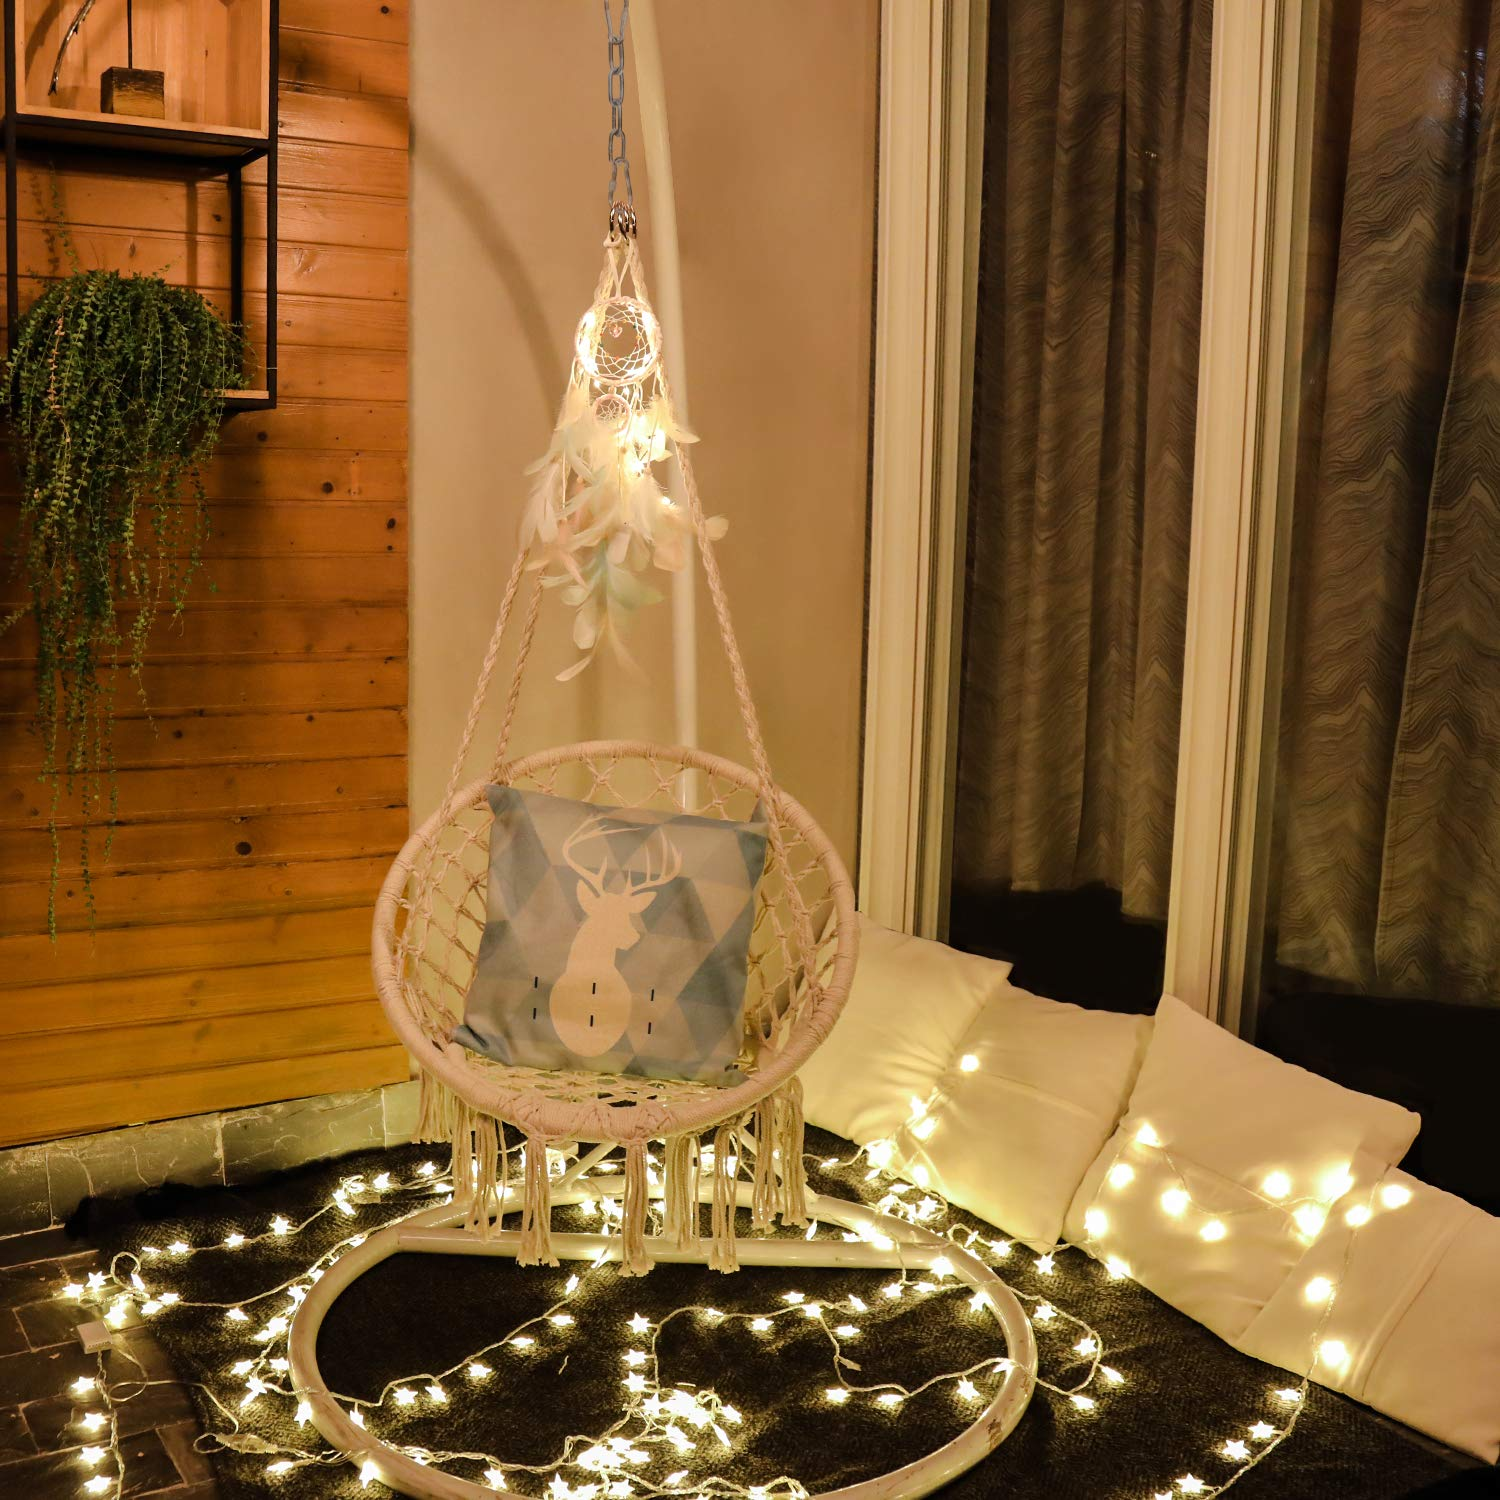 X Cosrack Hammock Swing Chair With Dream Catcher For 2 16 Years Old Kids Handmade Knitted Macrame Hanging Swing Chair For Indoor Bedroom Yard Garden 230 Pound Capacity Garden Outdoor Awsumnews Co Za